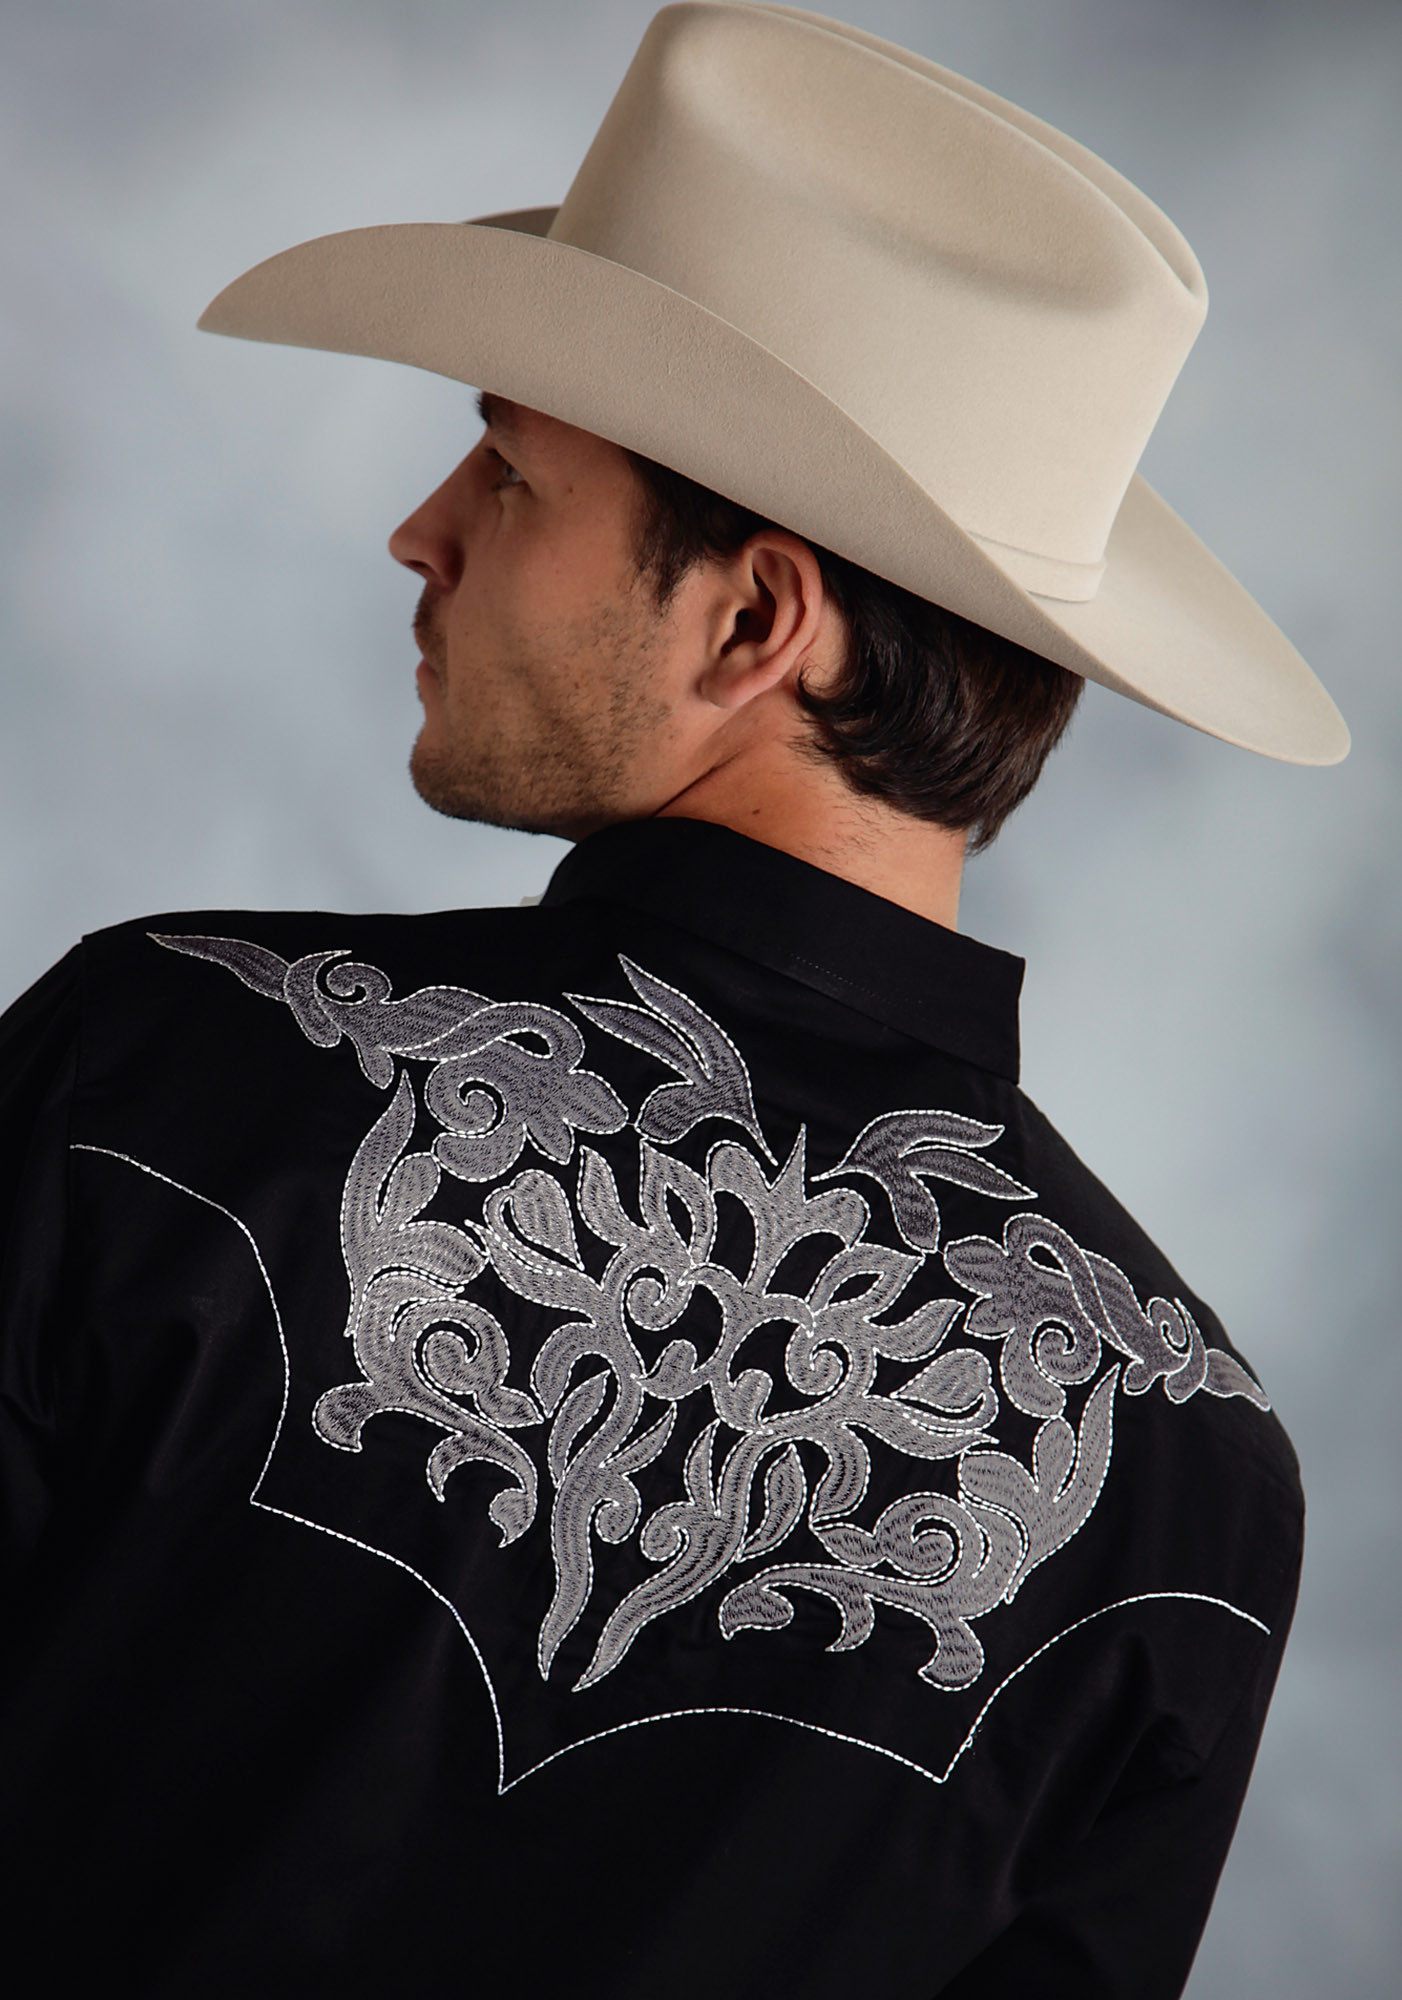 Western Shirts for Men Casual Button Collar Dress Shirt with Pocket S-XXL. from $ 12 99 Prime. out of 5 stars 5. Funny World. Men's Western Cowboy Costume T-Shirts. from $ 14 90 Prime. out of 5 stars Scully. Men's Crimson Floral Embroidery Retro Western Shirt - PCrim. from $ 79